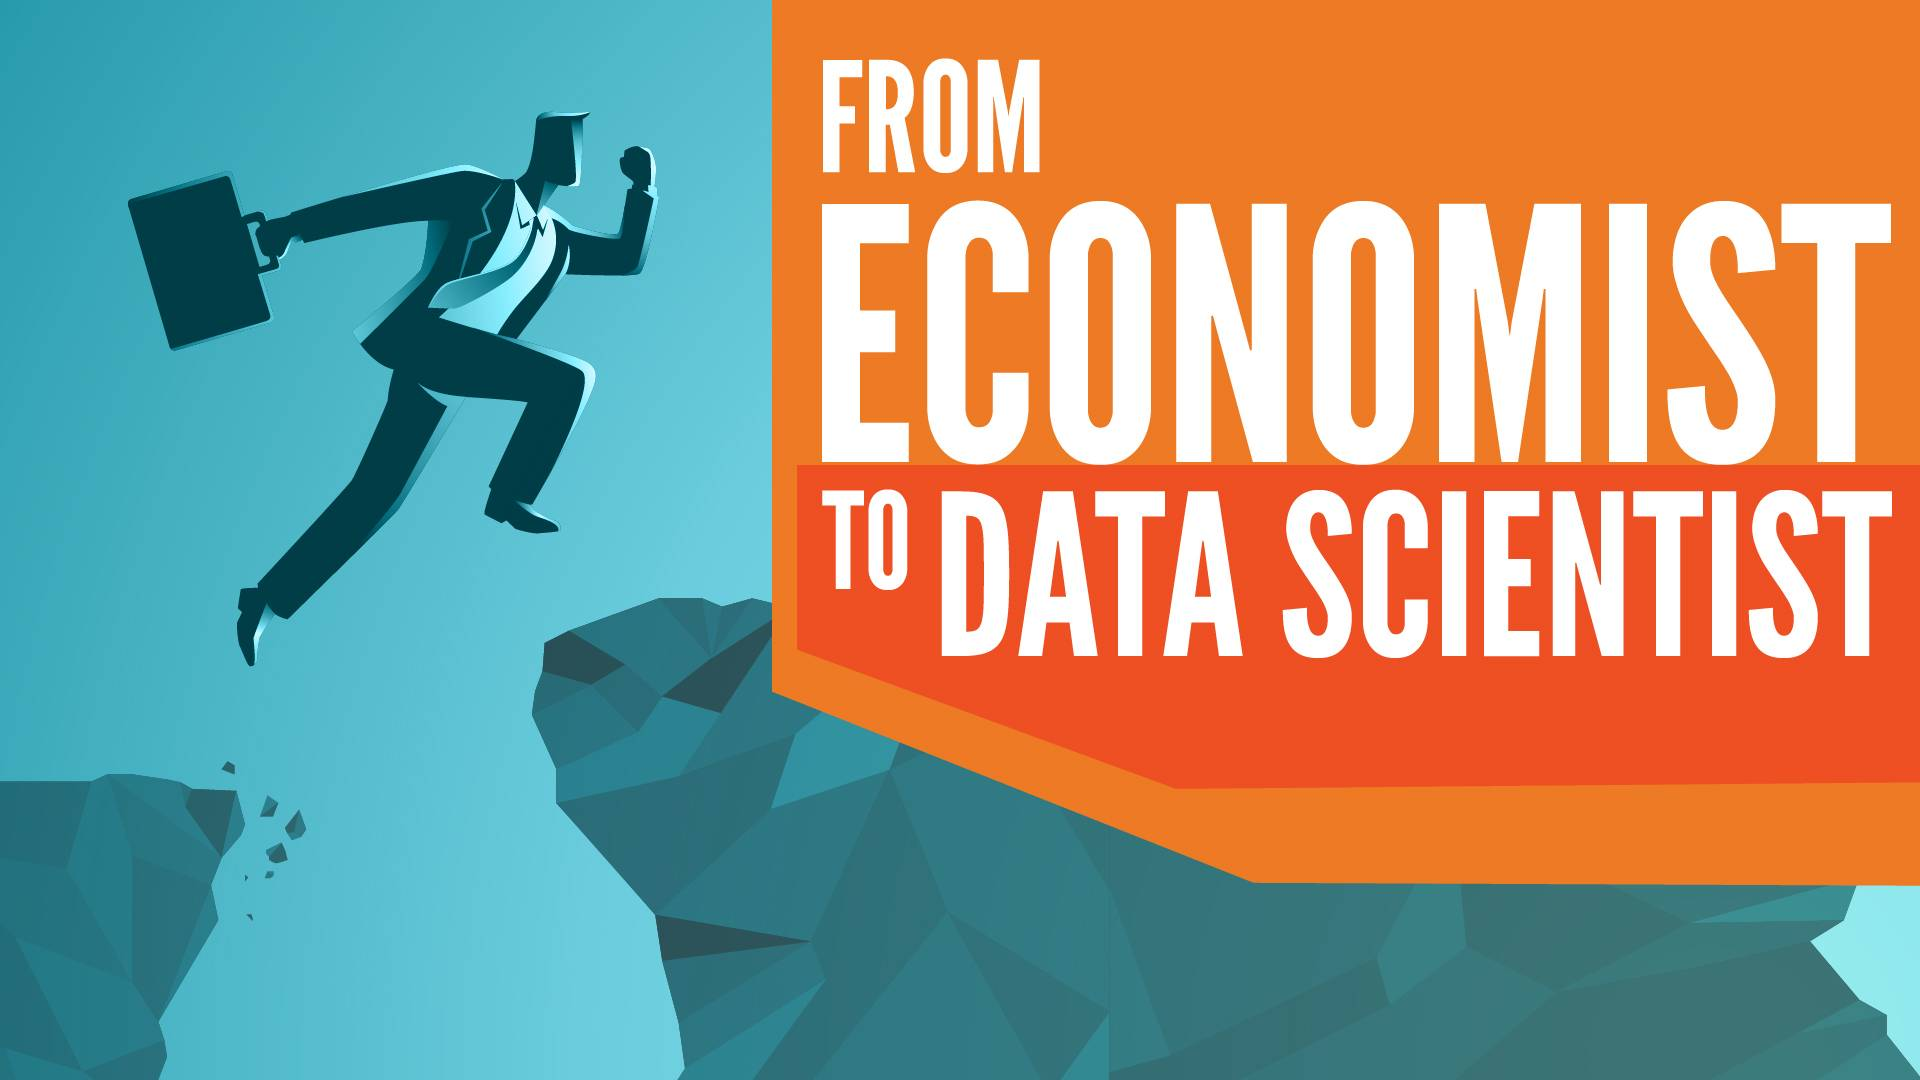 How to Get Into Data Science With an Economics Degree?